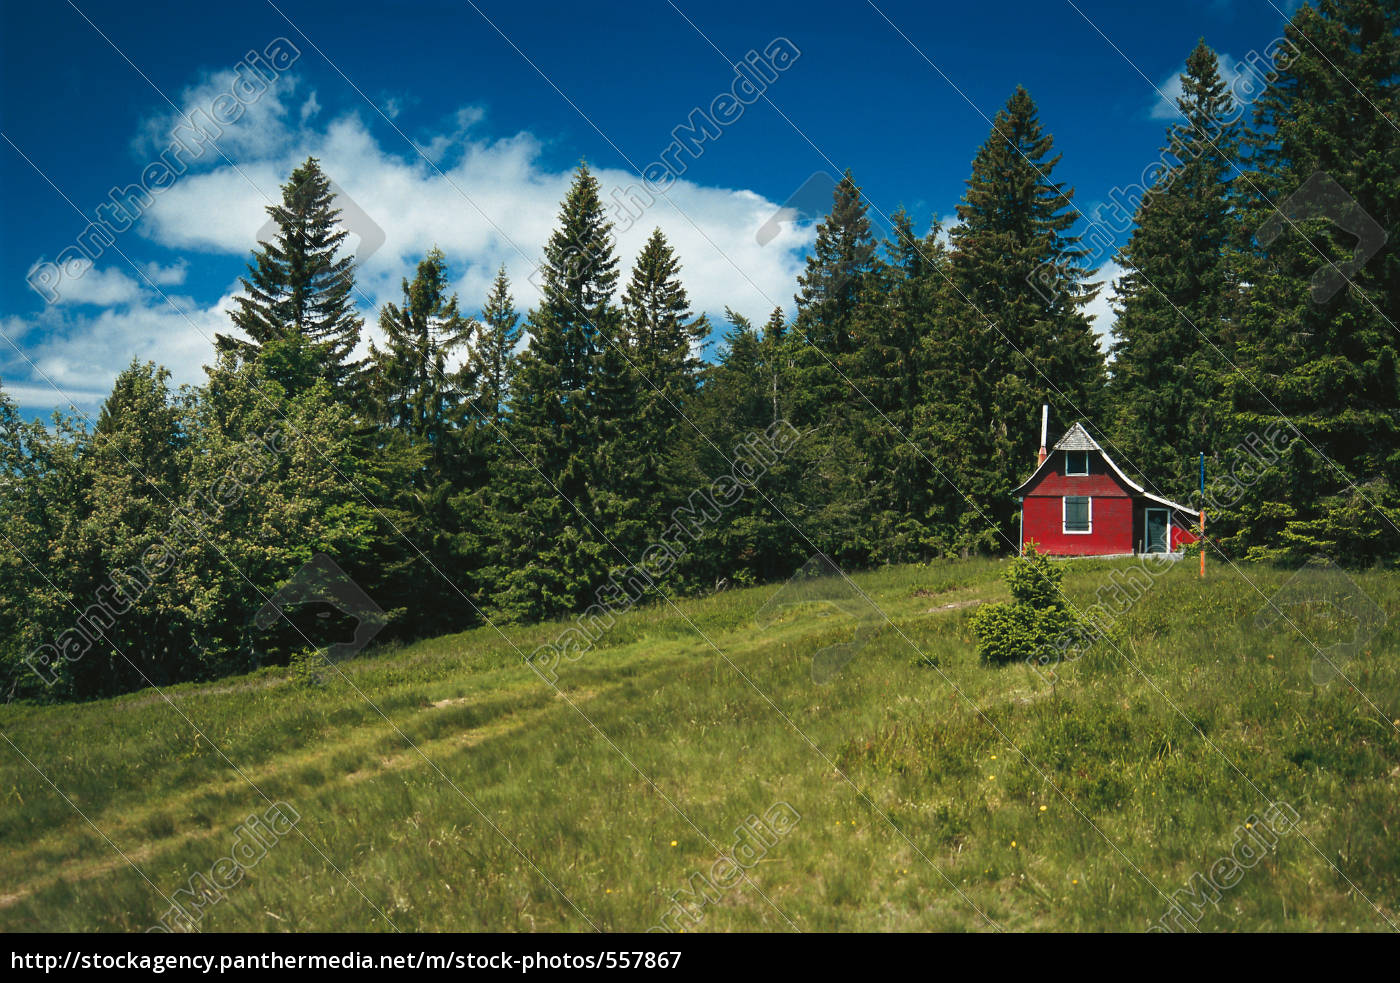 cottage, at, the, forest - 557867